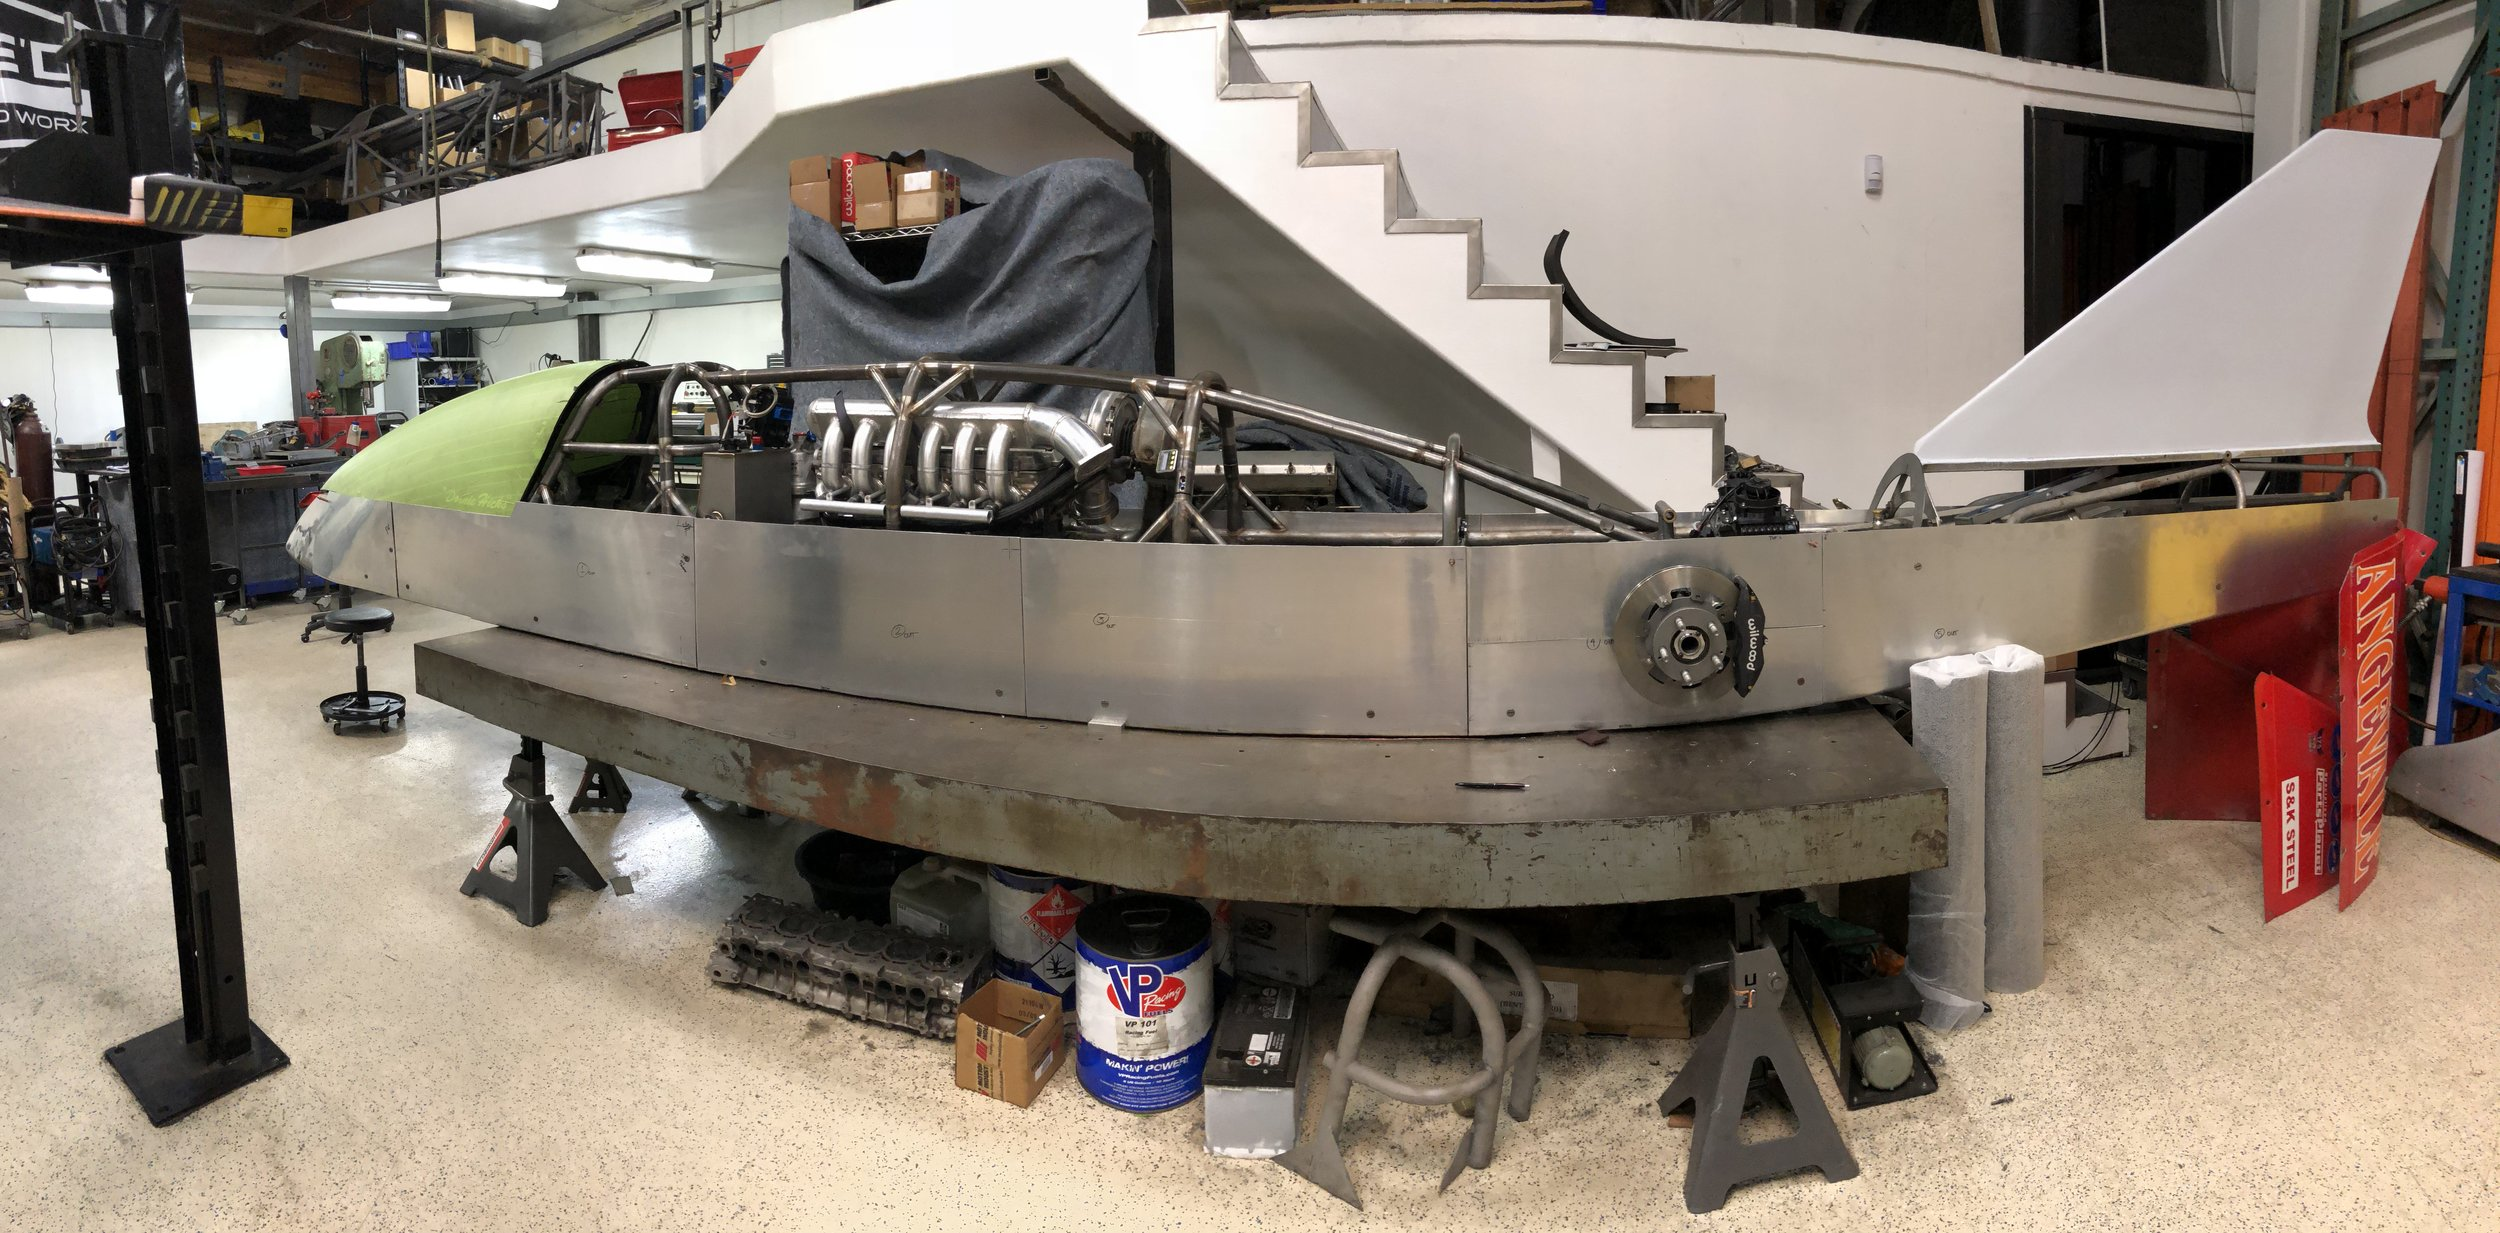 f/bfl 1500hp 2jz lakester built here at aced